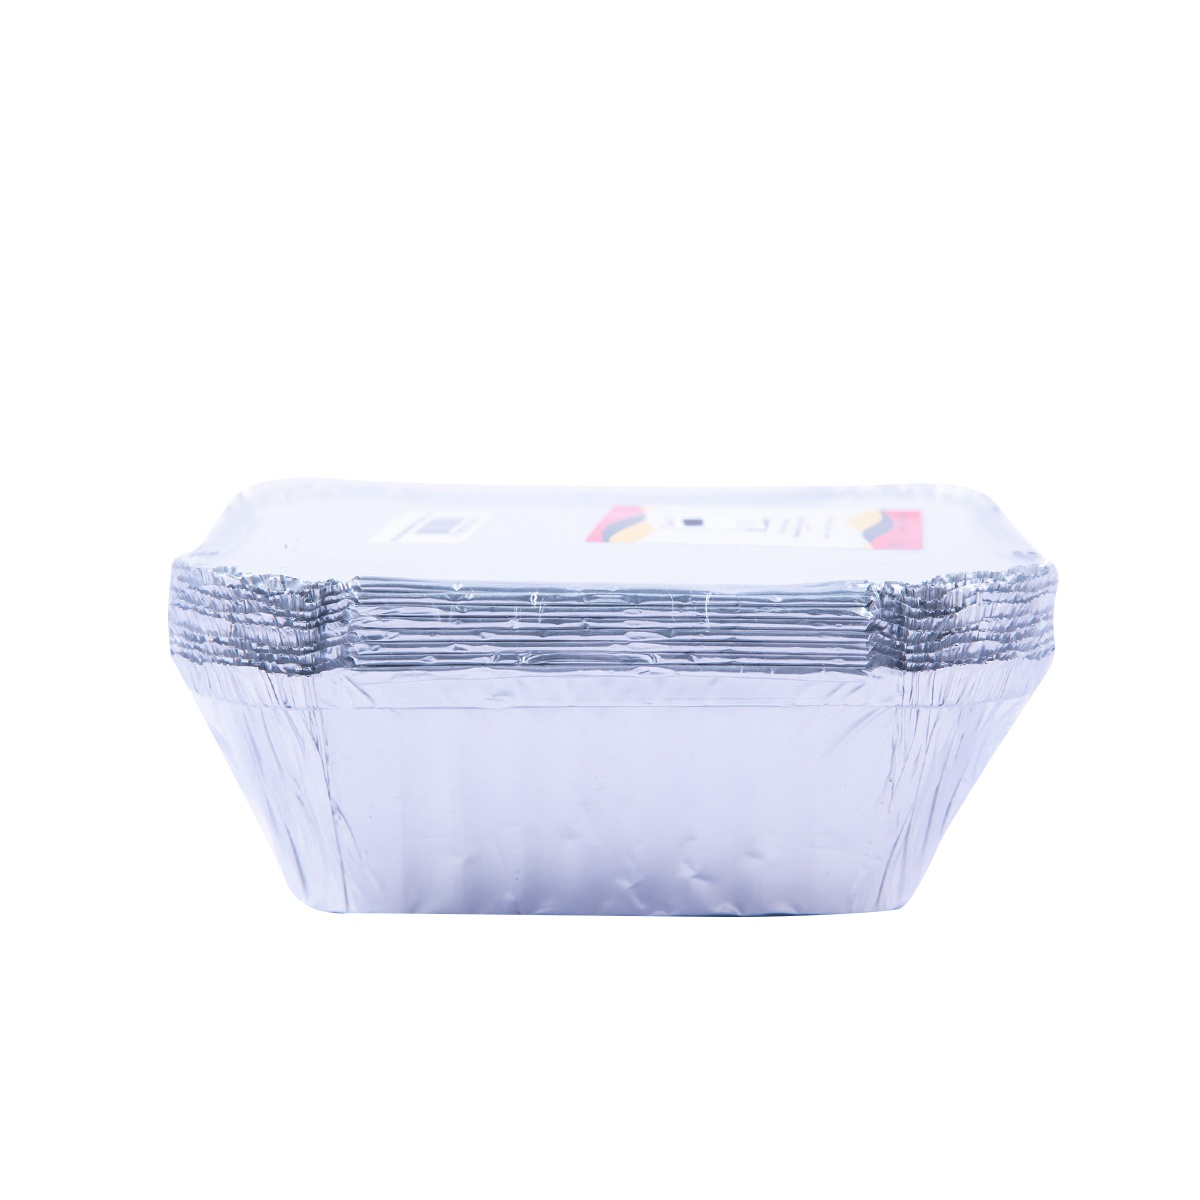 Safepac Aluminium Container With Lid 400ml 10s - in Sri Lanka